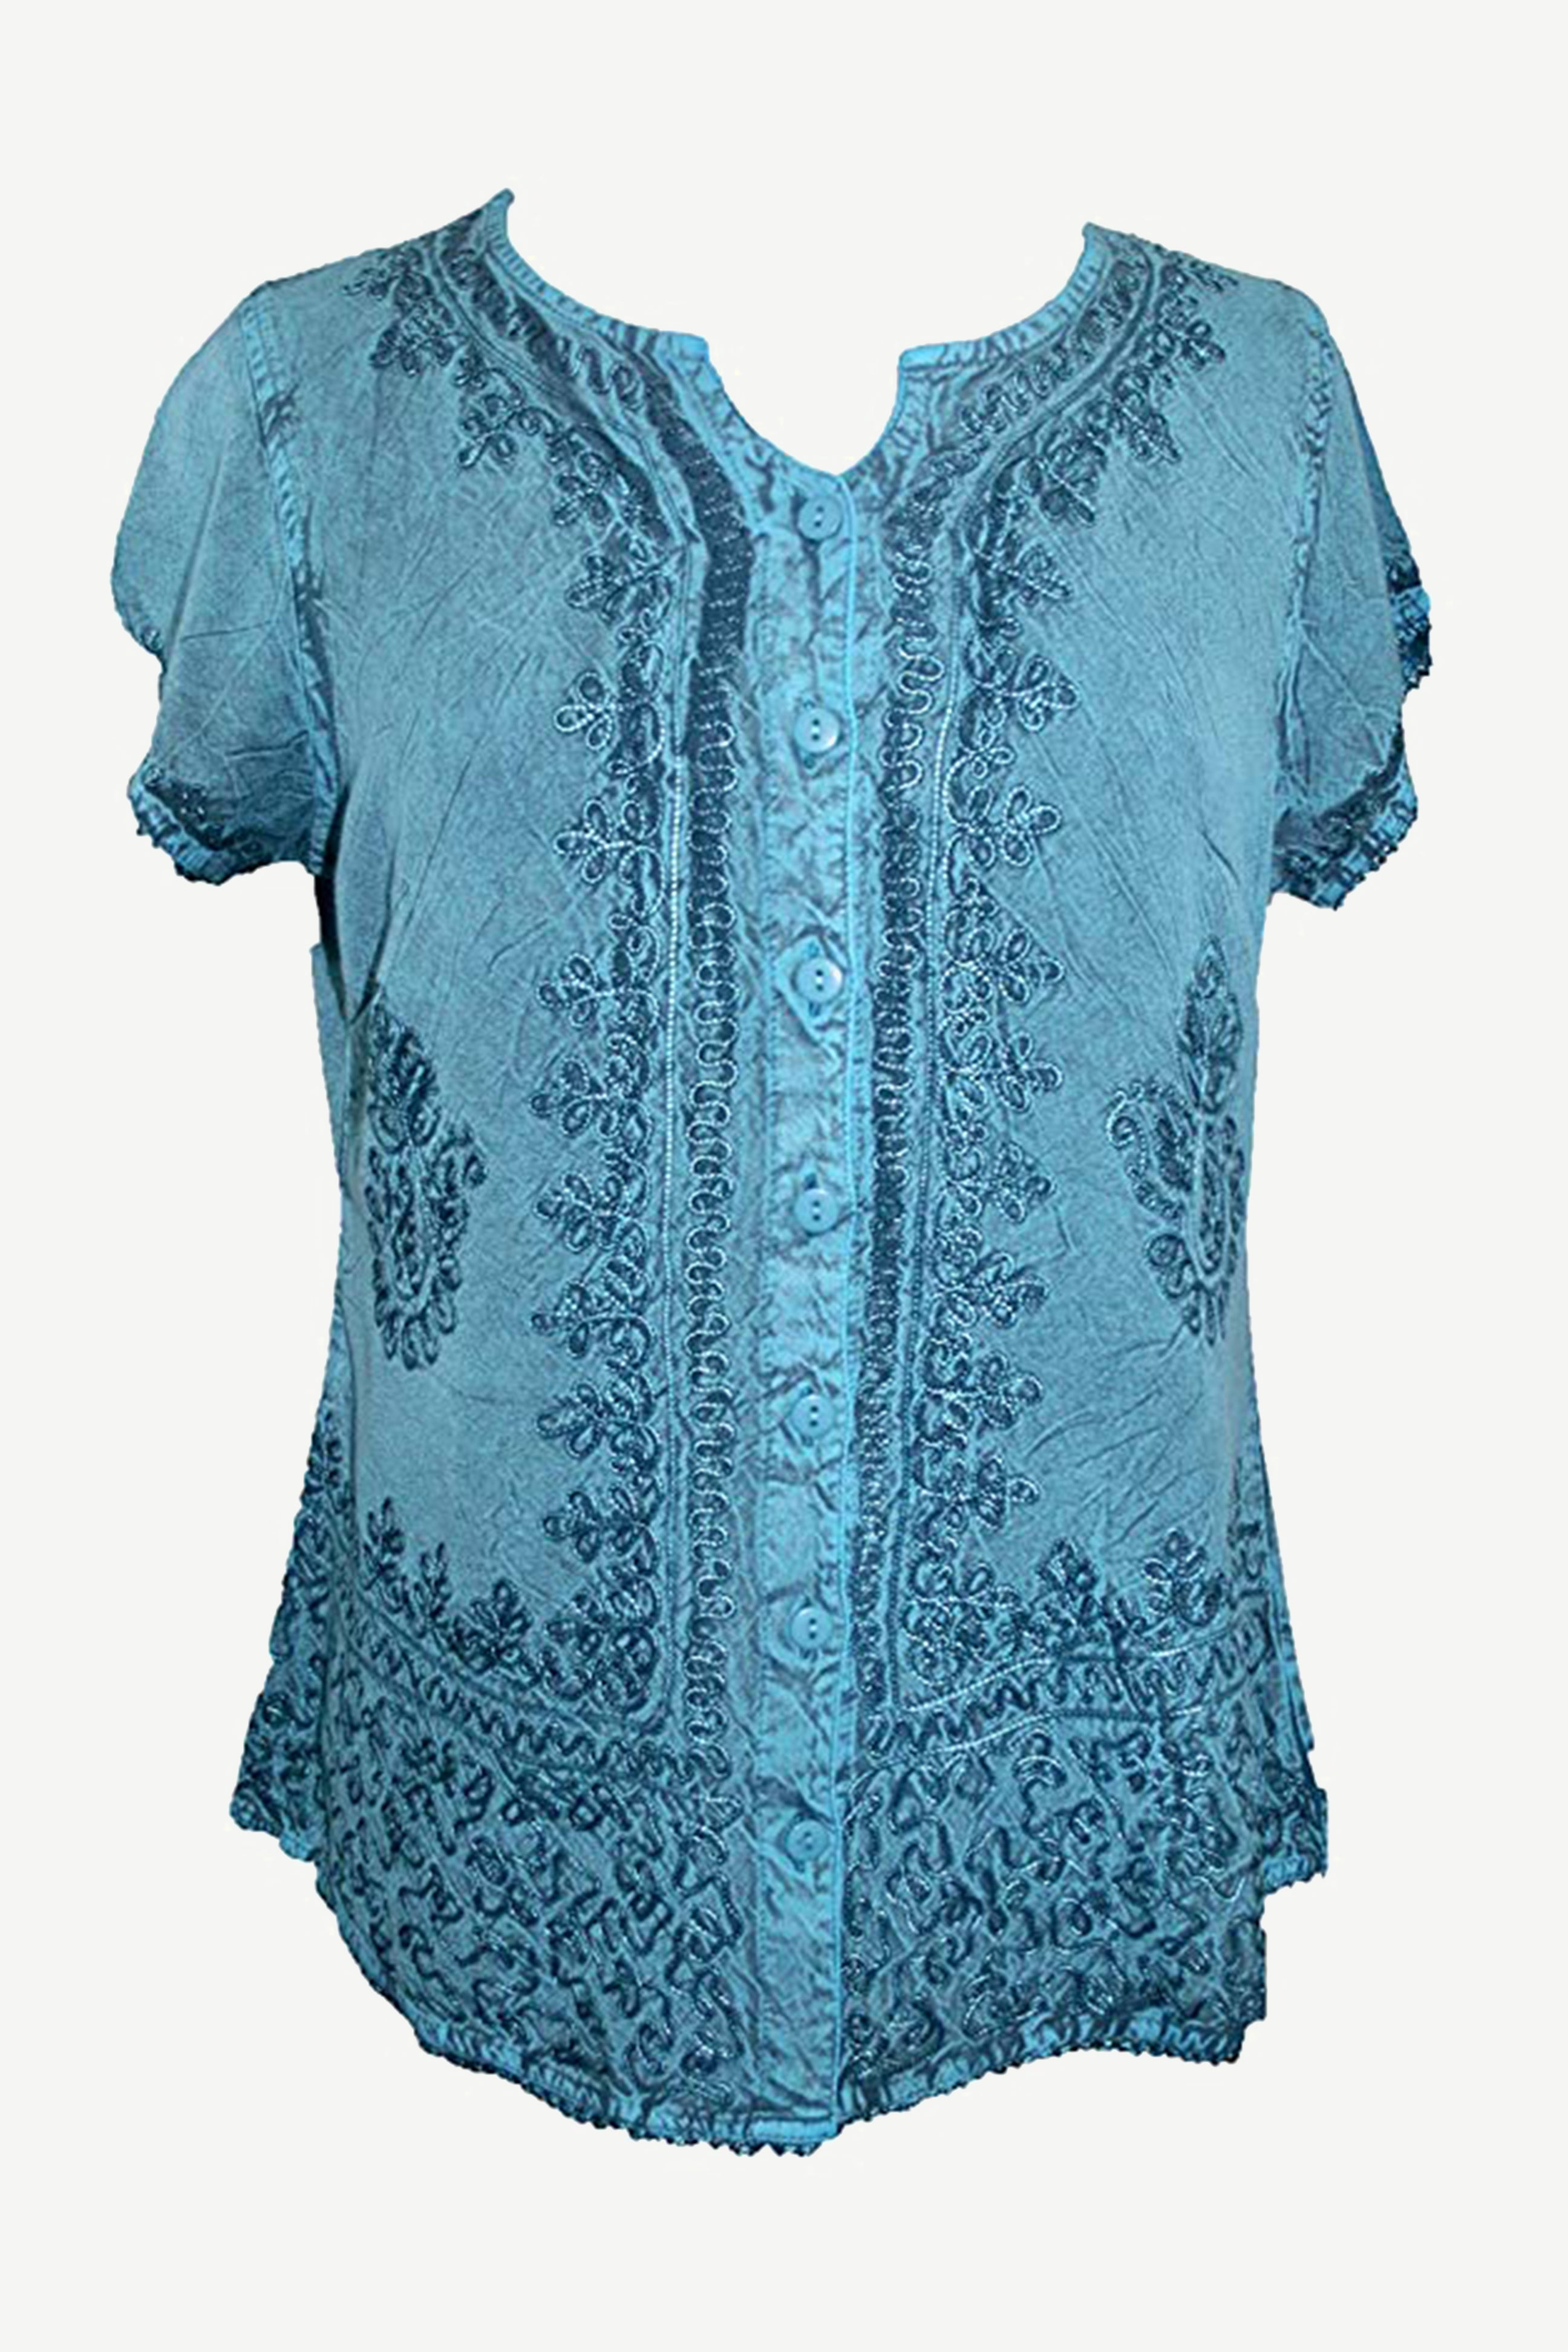 f3a753ddfd 144 B Medieval Embroidered Button Down Cap Sleeve Shirt Blouse ...